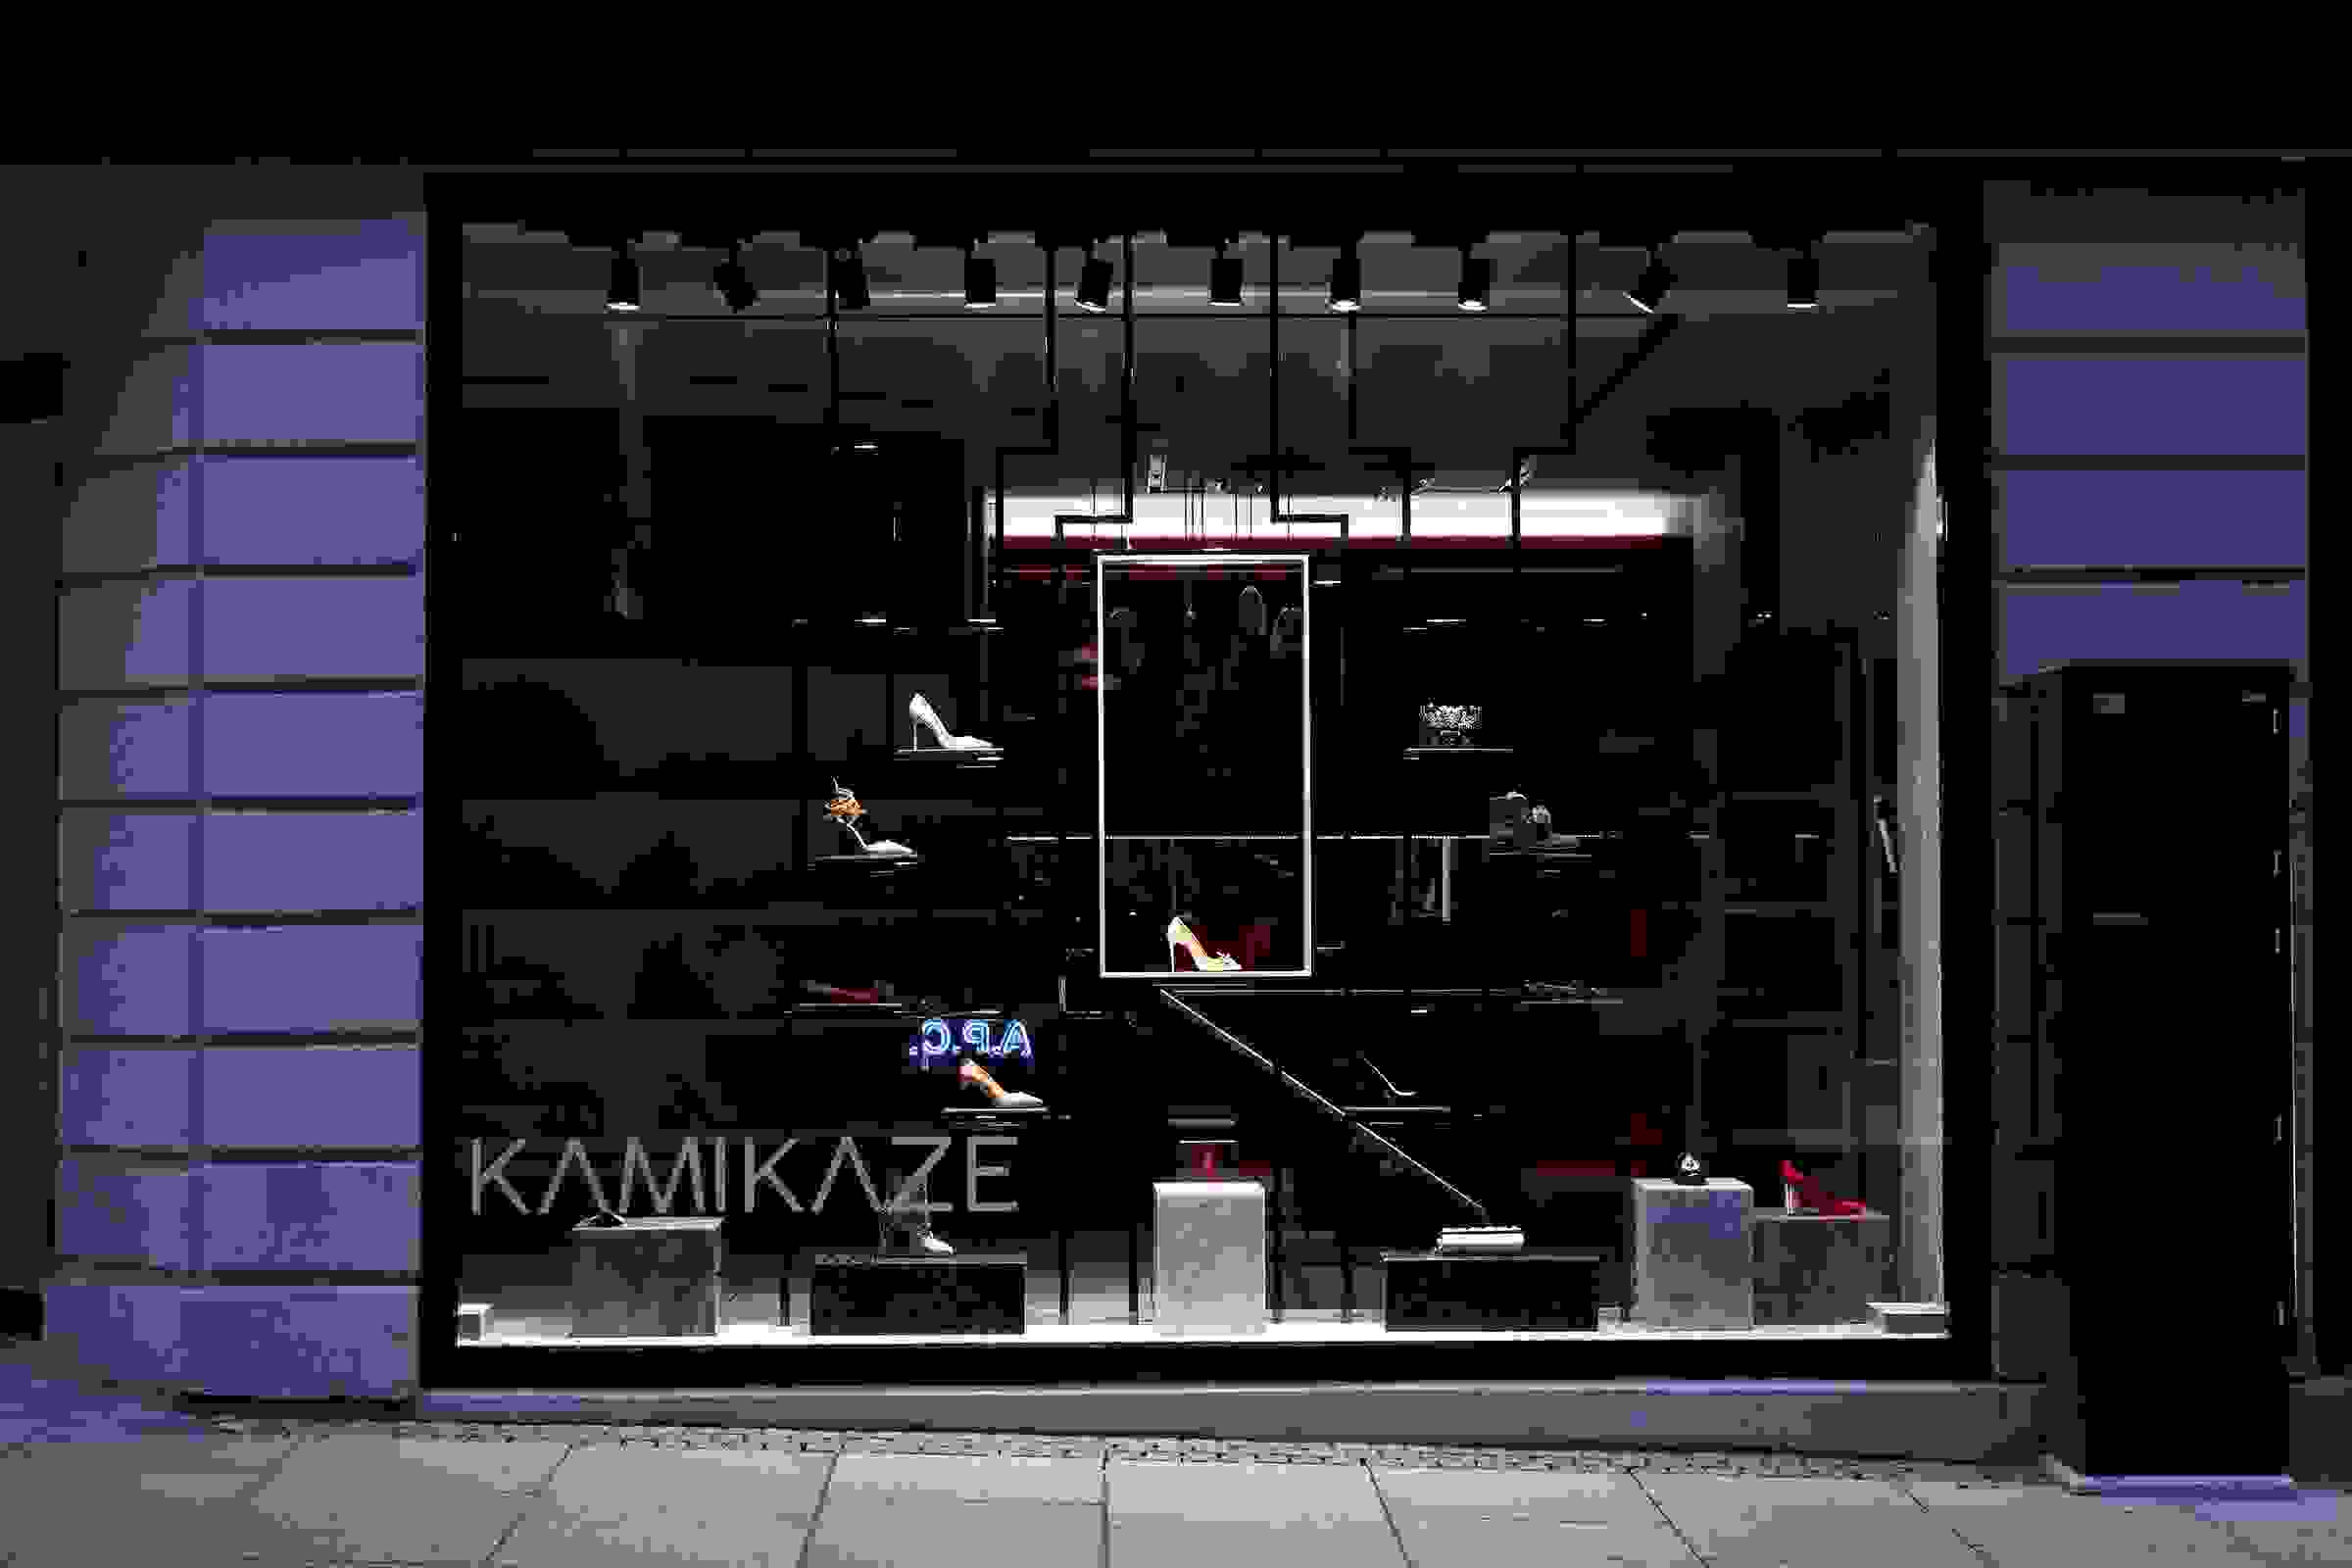 Kamikaze luxury shoes